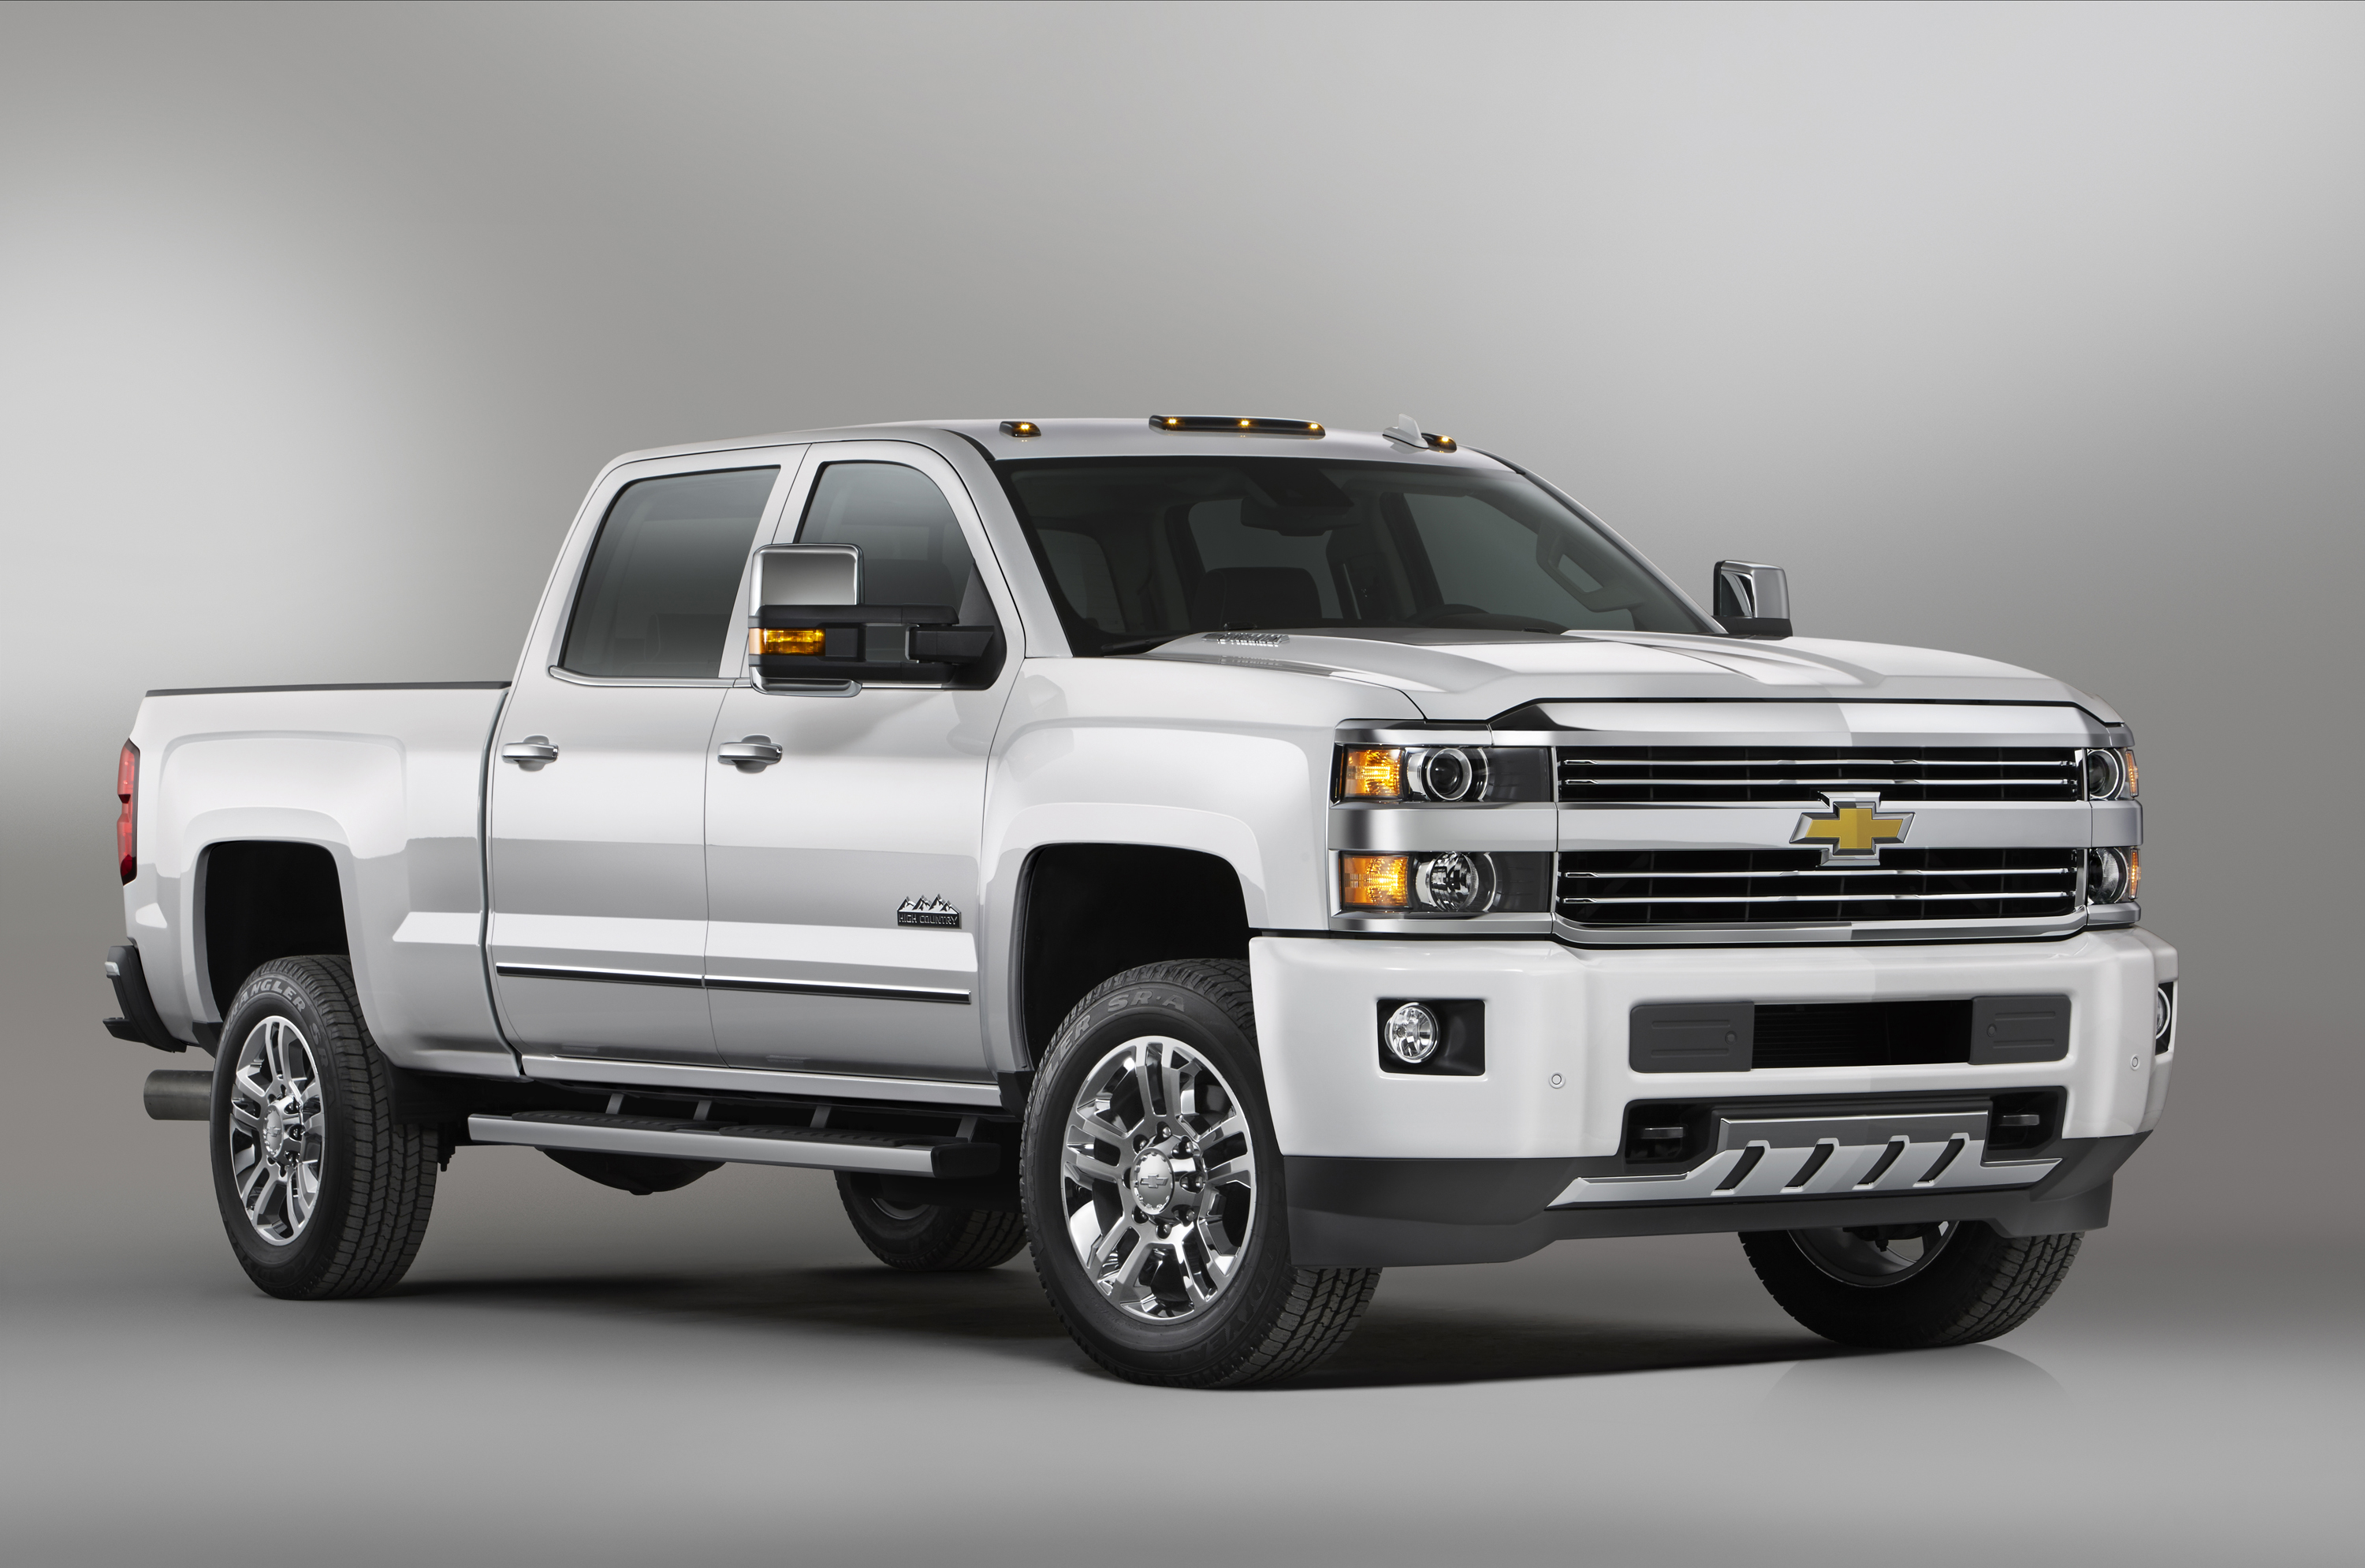 2015 Chevrolet Silverado 2500 Hd Aces Frame Twist Test Beats Ford F250 Super Duty Video 87759